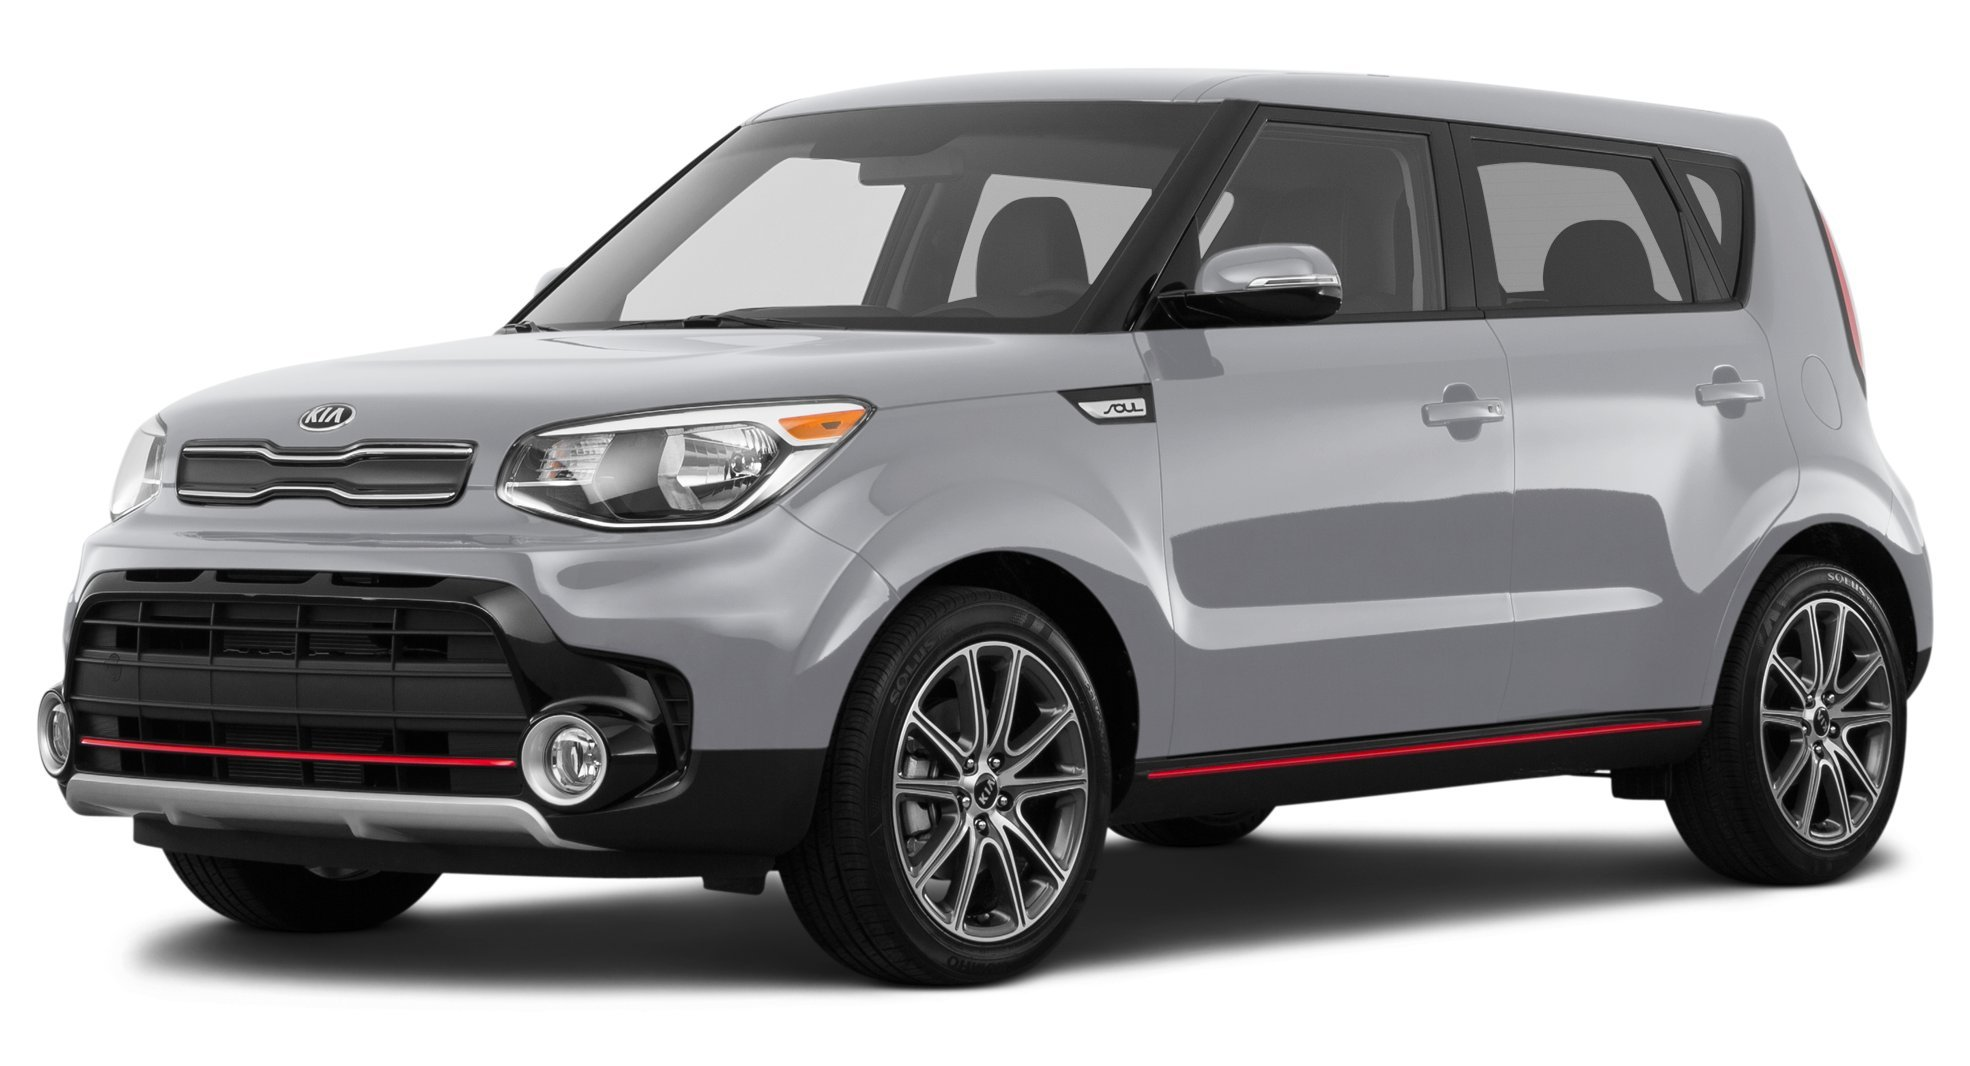 2017 kia soul reviews images and specs vehicles. Black Bedroom Furniture Sets. Home Design Ideas